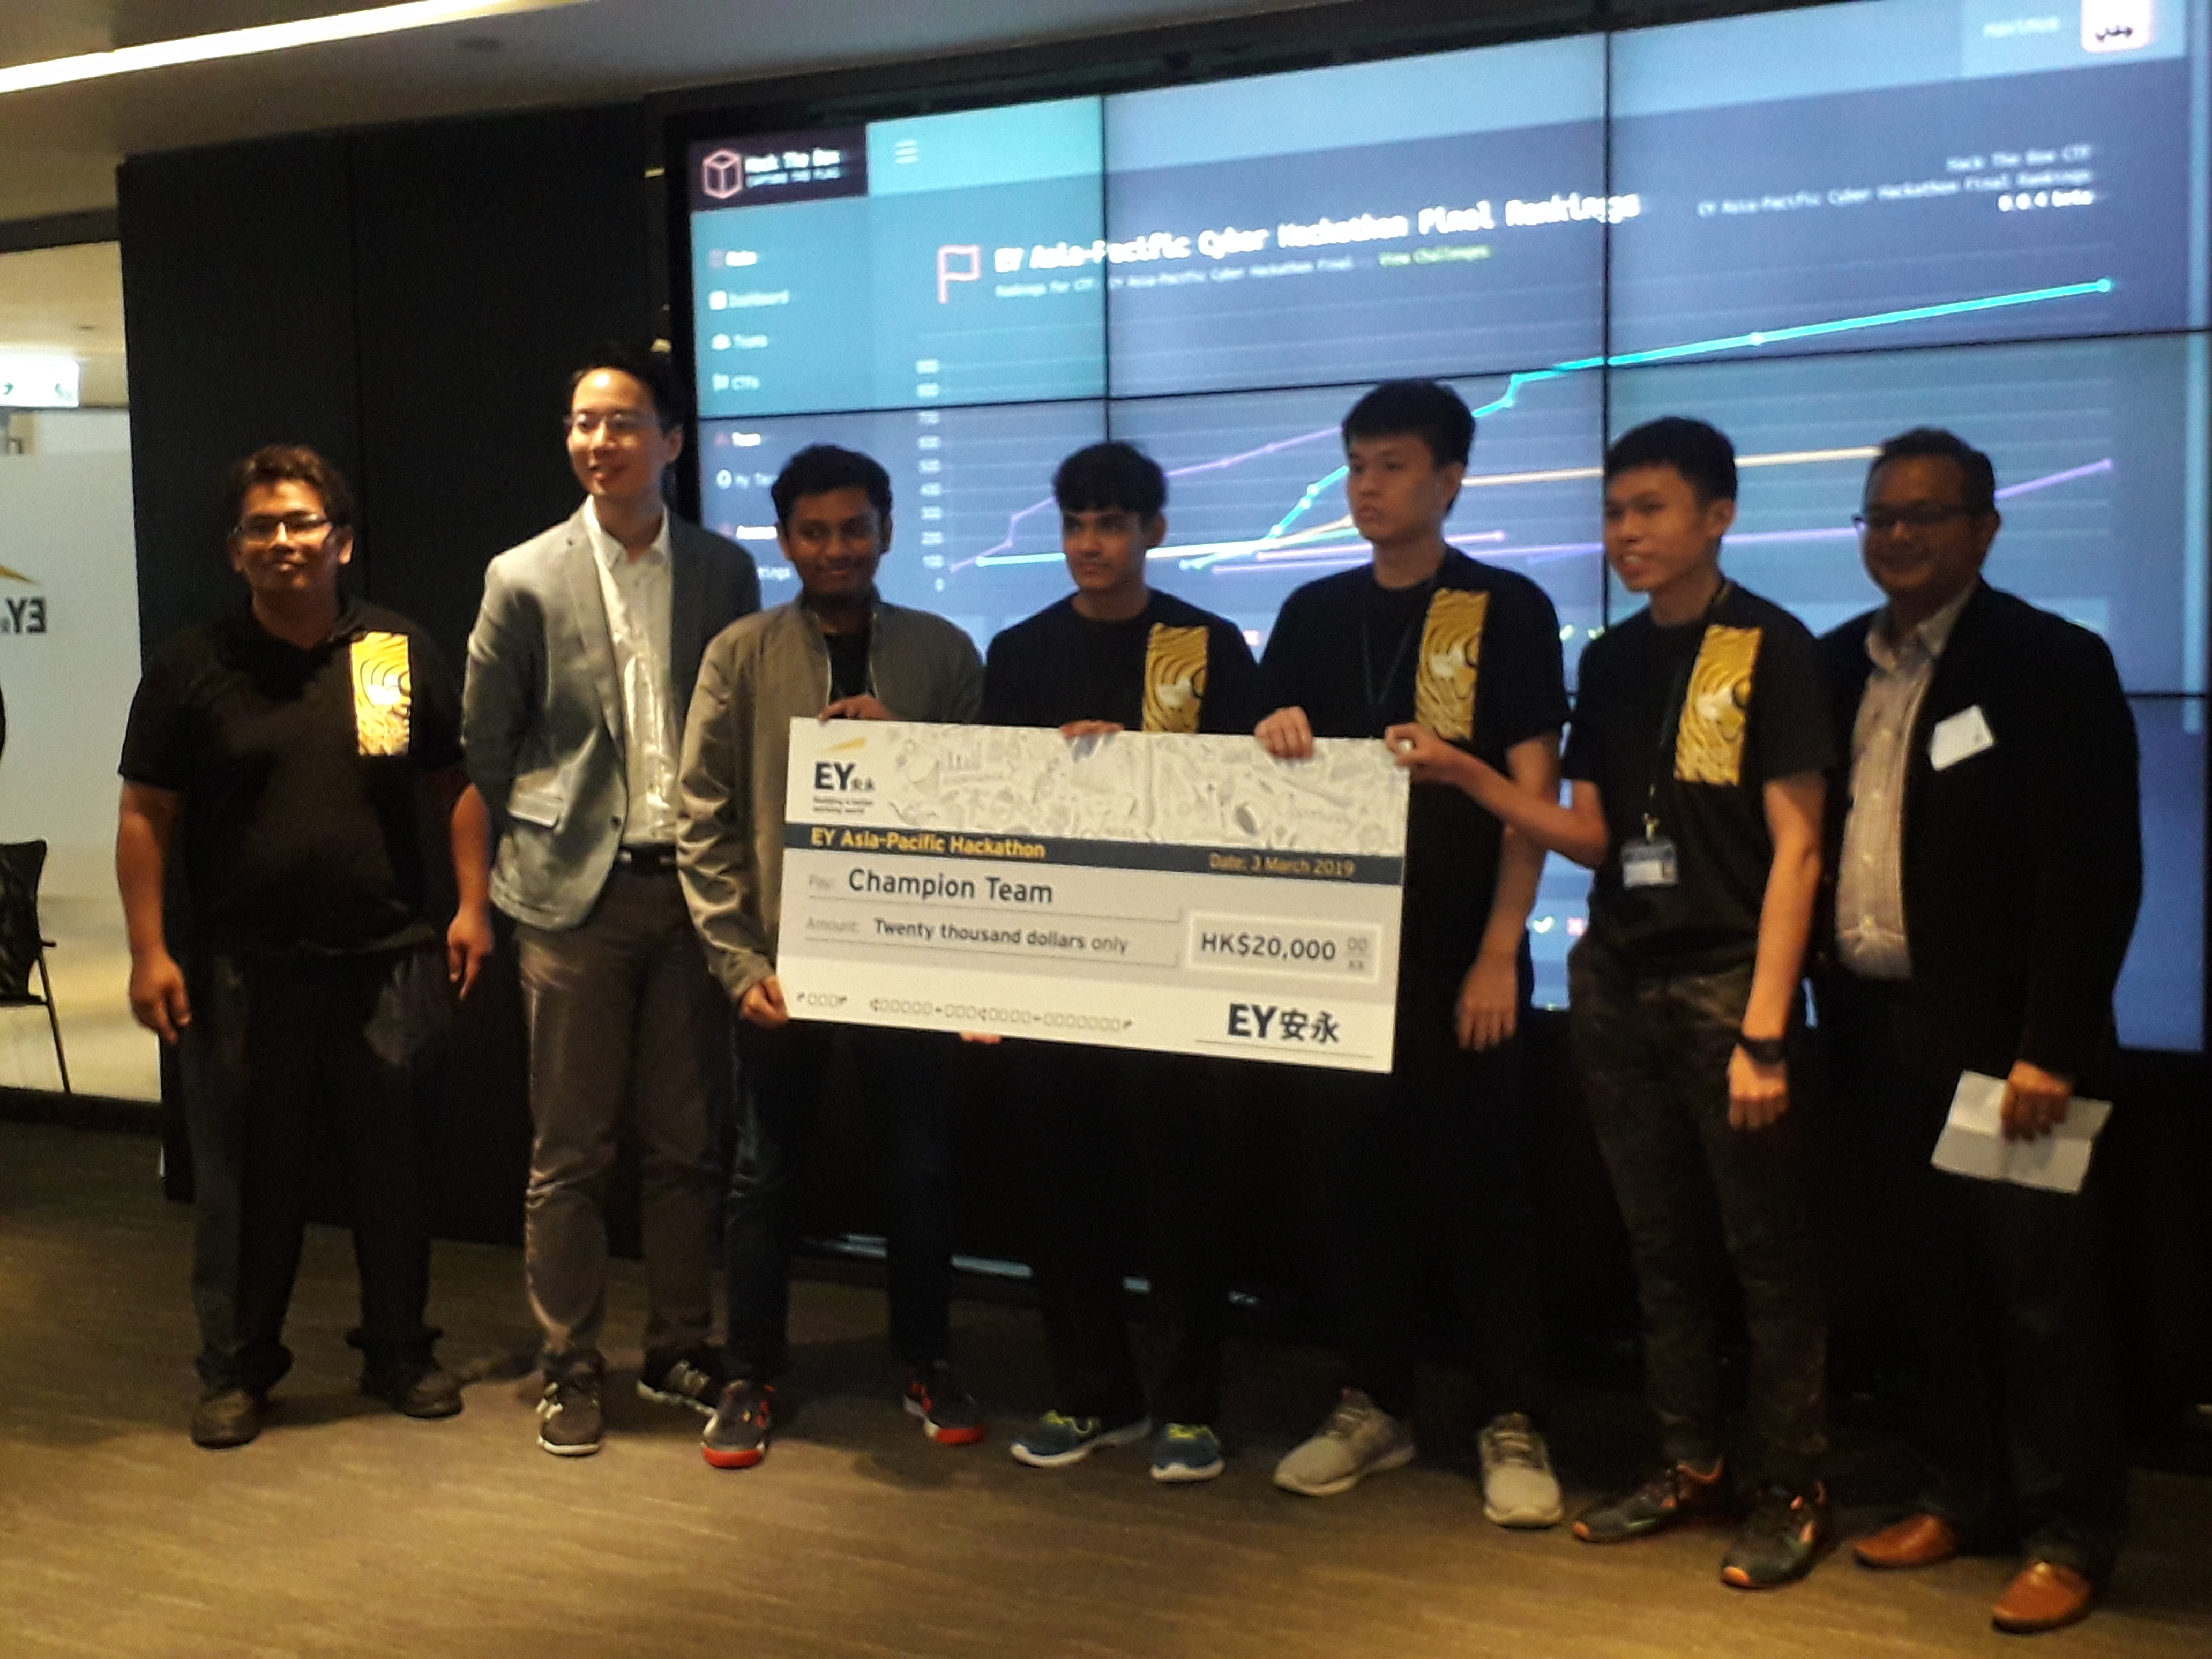 Asia-Pacific Cyber Champs